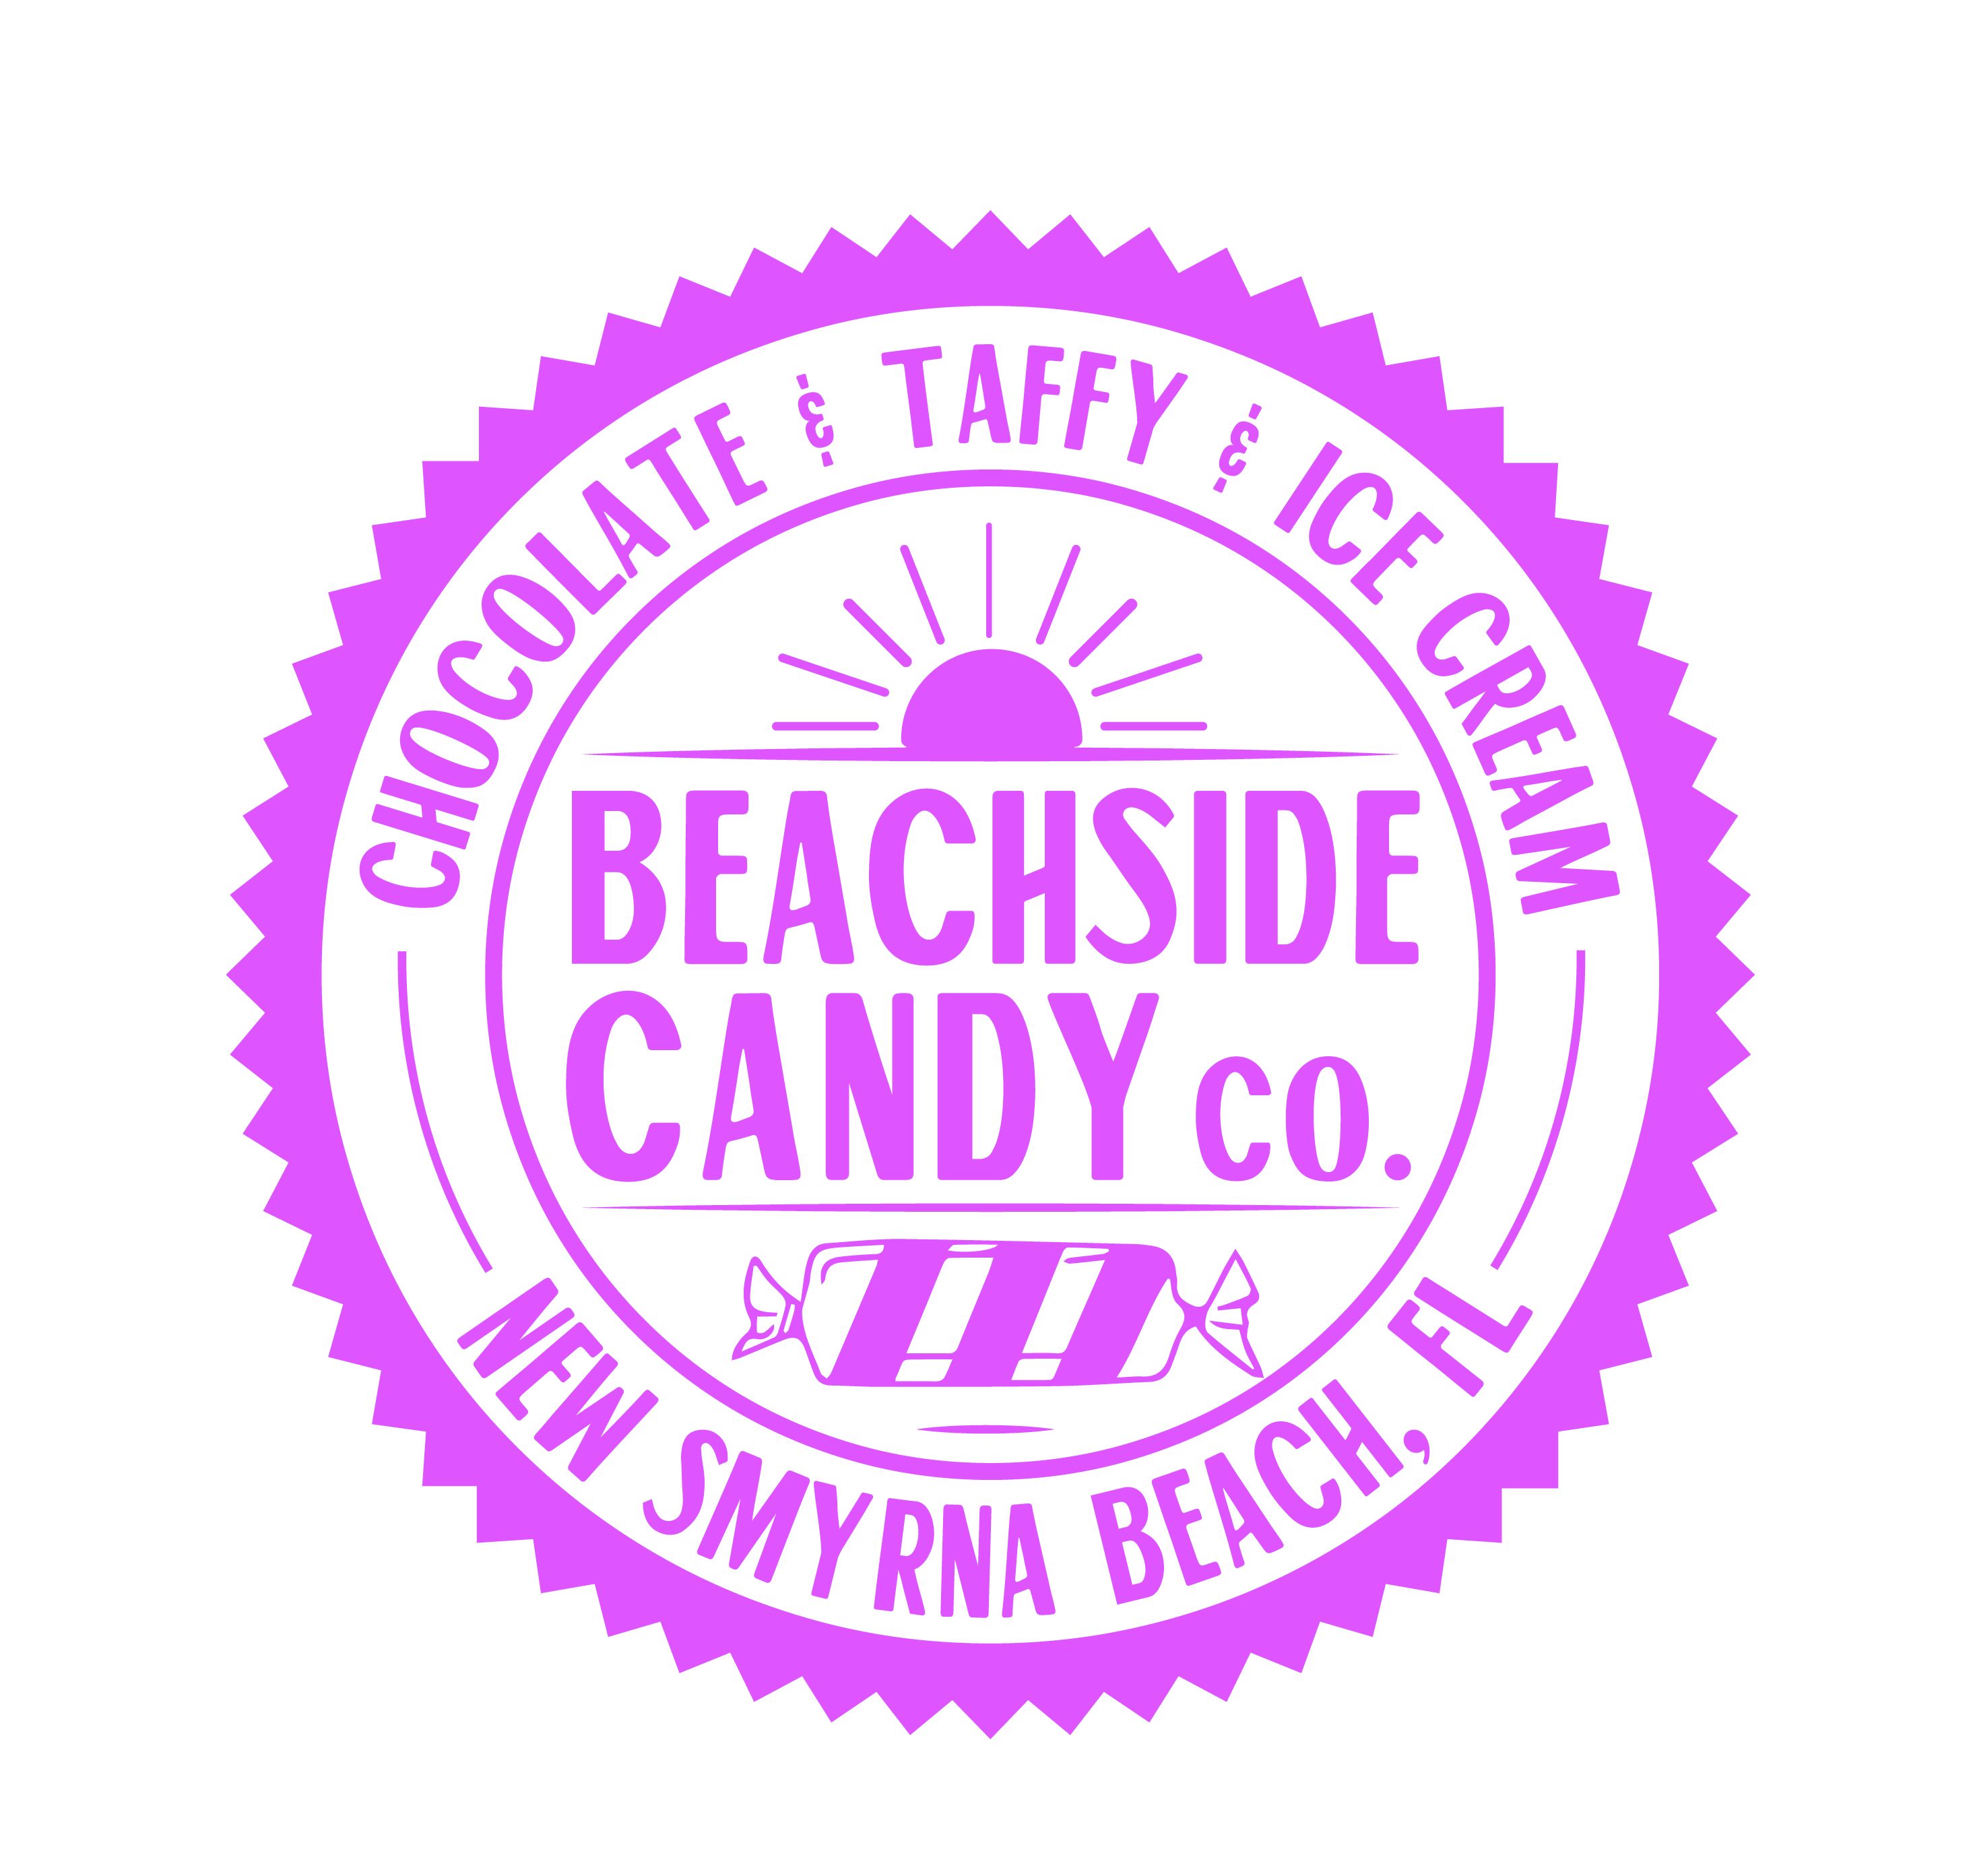 Beachside Candy Co